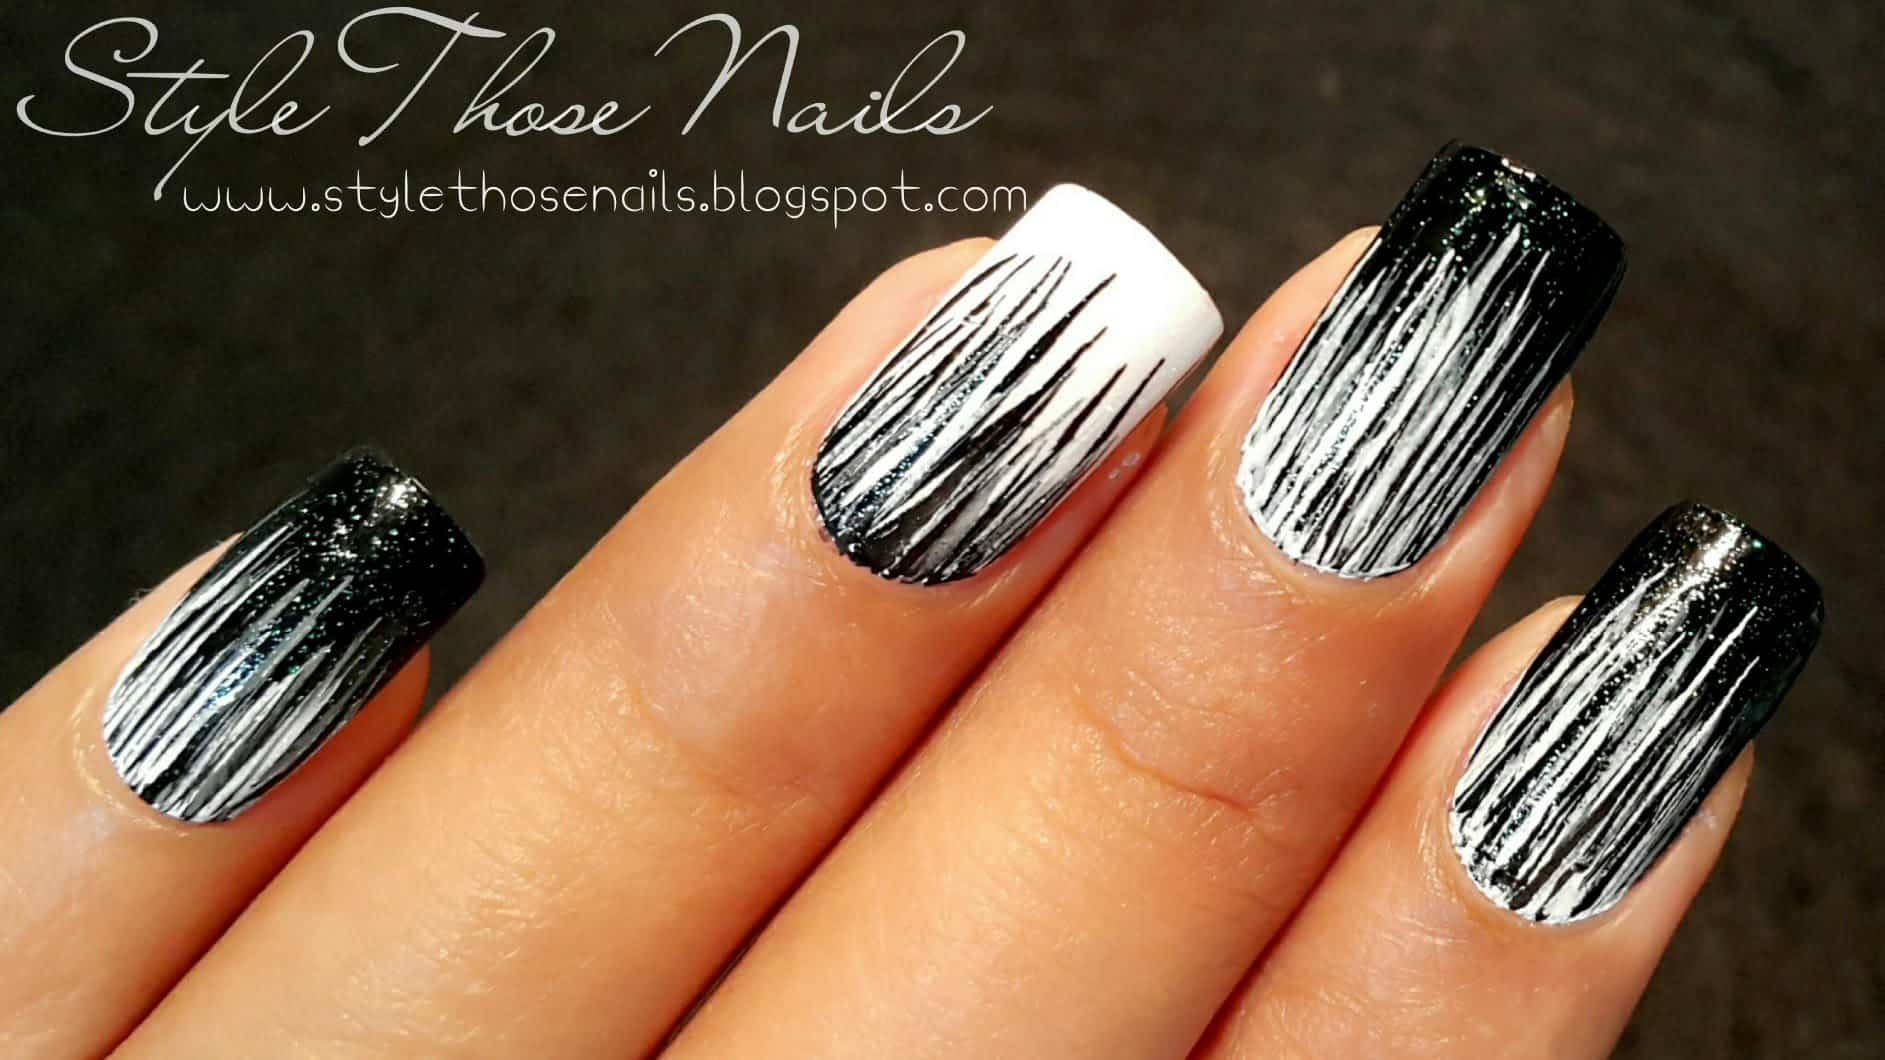 Waterfall monochrome nails